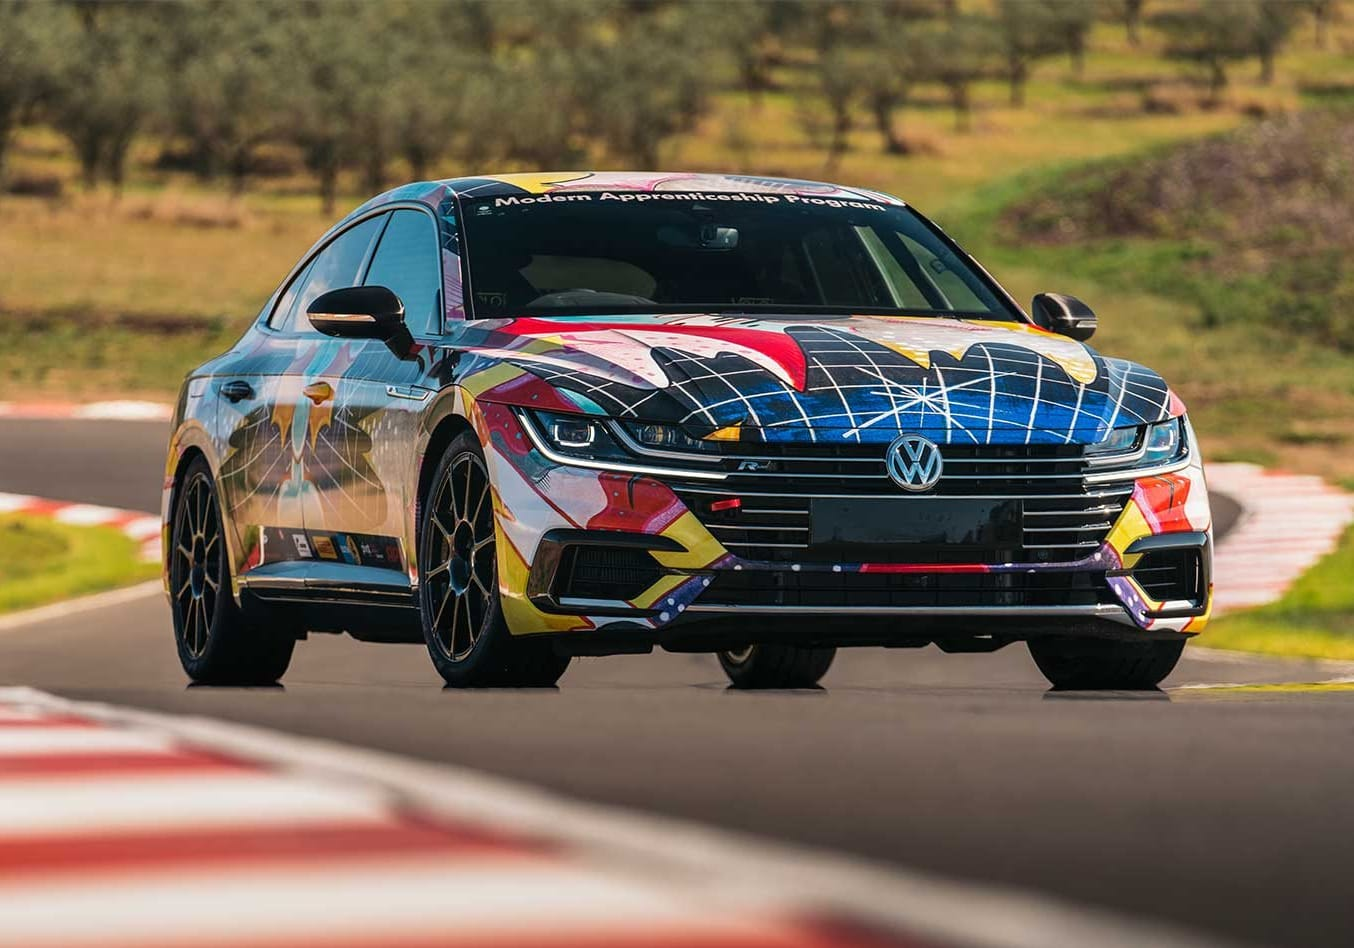 2018 Volkswagen Arteon time attack car performance review